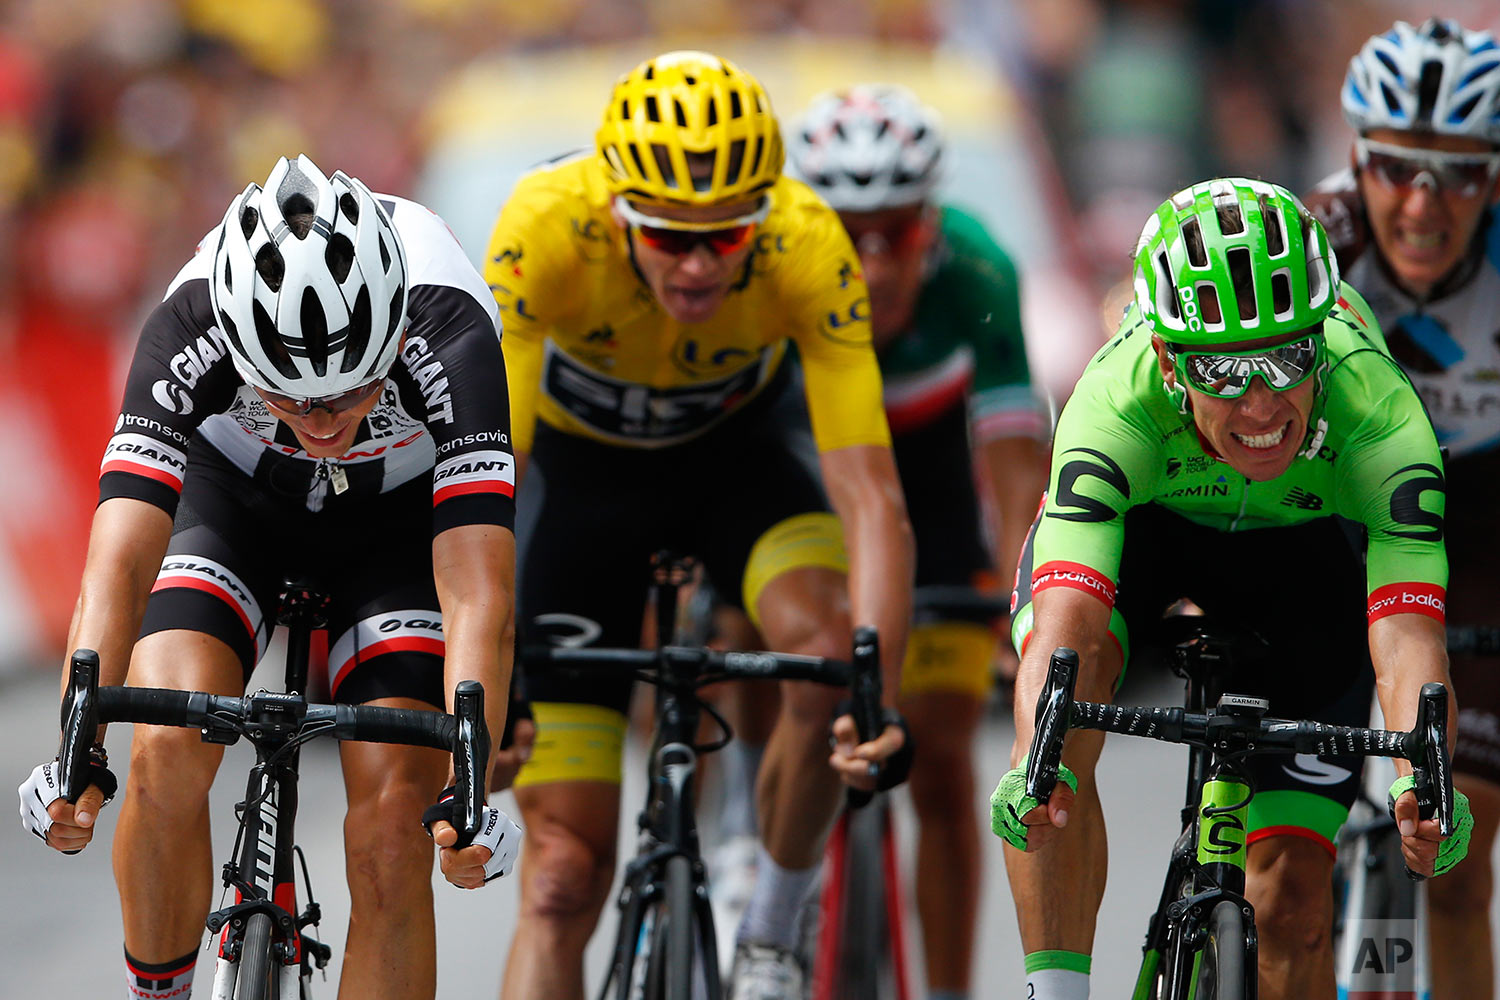 Colombia's Rigoberto Uran, right, crosses the finish line ahead of ahead of France's Warren Barguil, left, Britain's Chris Froome, wearing the overall leader's yellow jersey, Italy's Fabio Aru, third from left, and France's Romain Bardet, far right, to win the ninth stage of the Tour de France cycling race over 181.5 kilometers (112.8 miles) with start in Nantua and finish in Chambery, France, Sunday, July 9, 2017. (AP Photo/Peter Dejong)